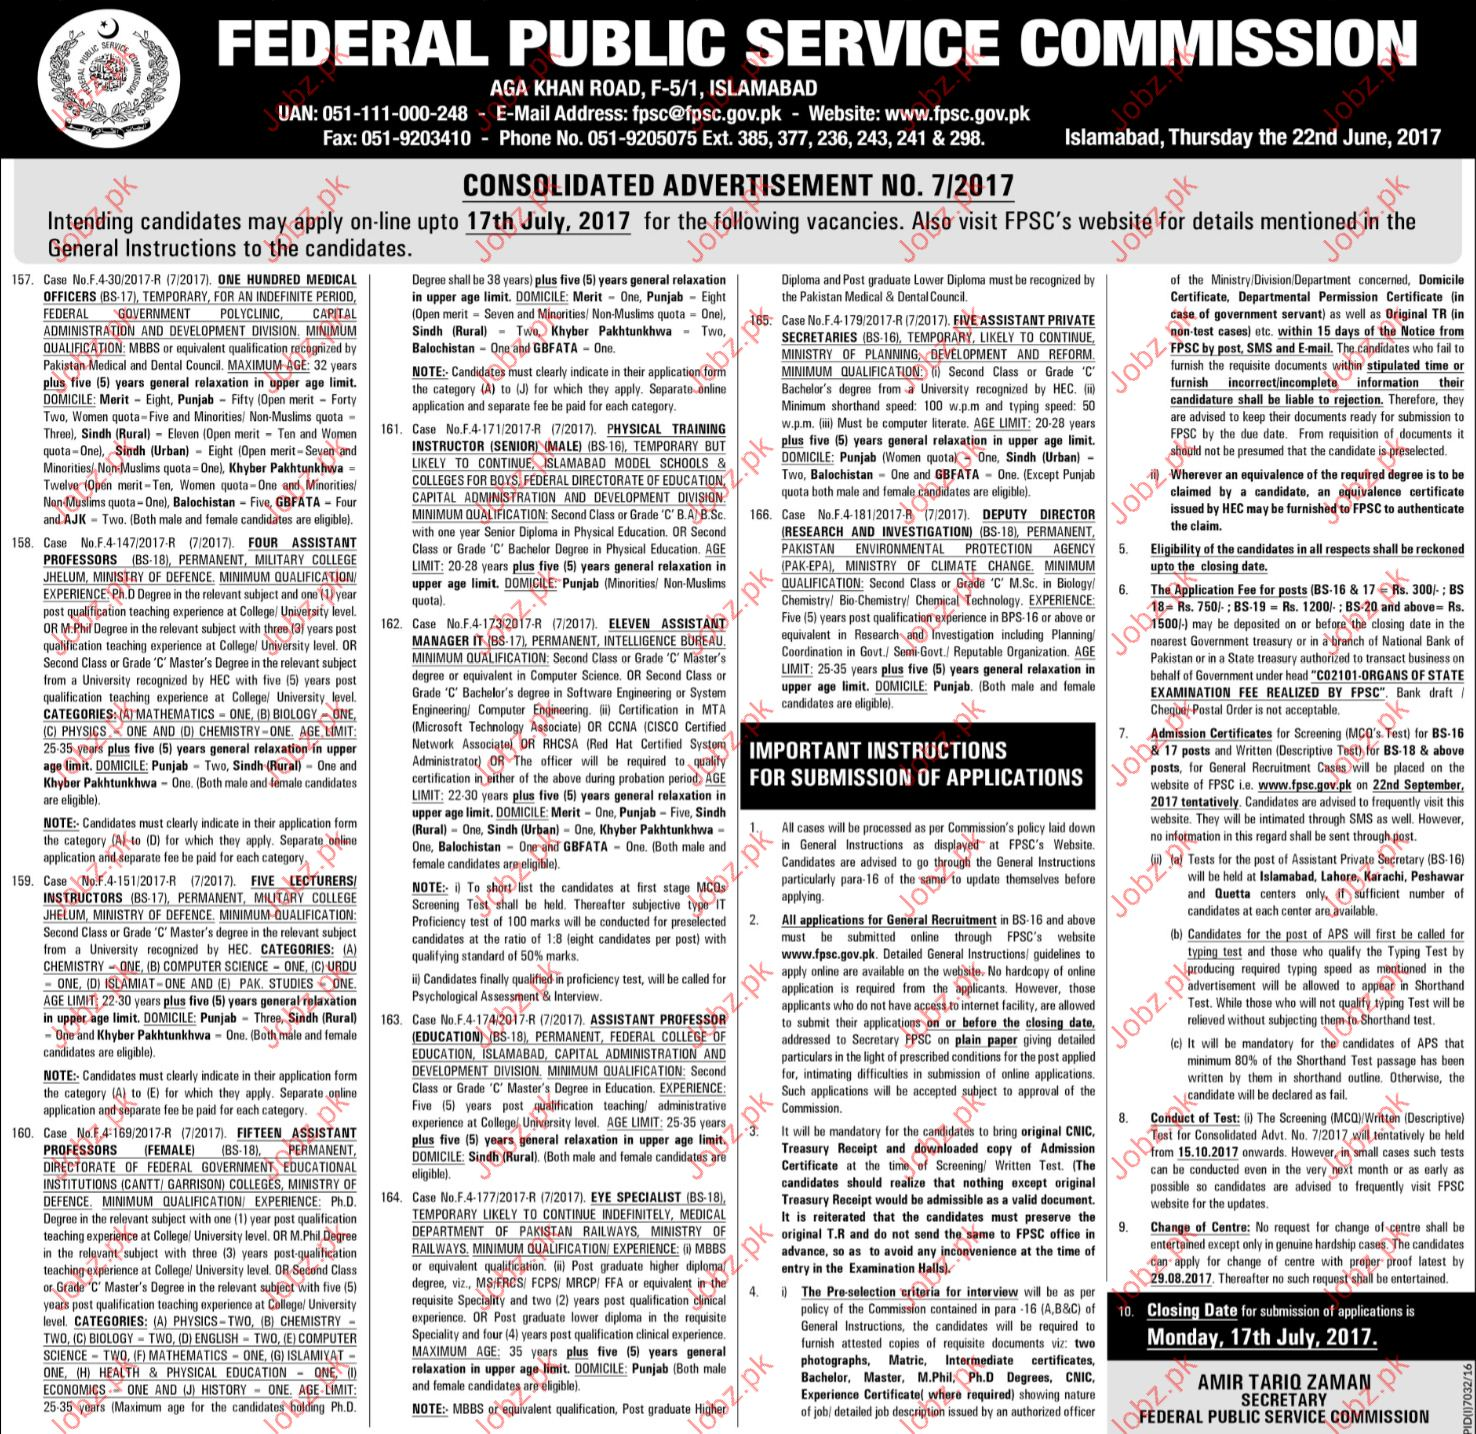 Medical officer Jobs Federal Publication Service Commission